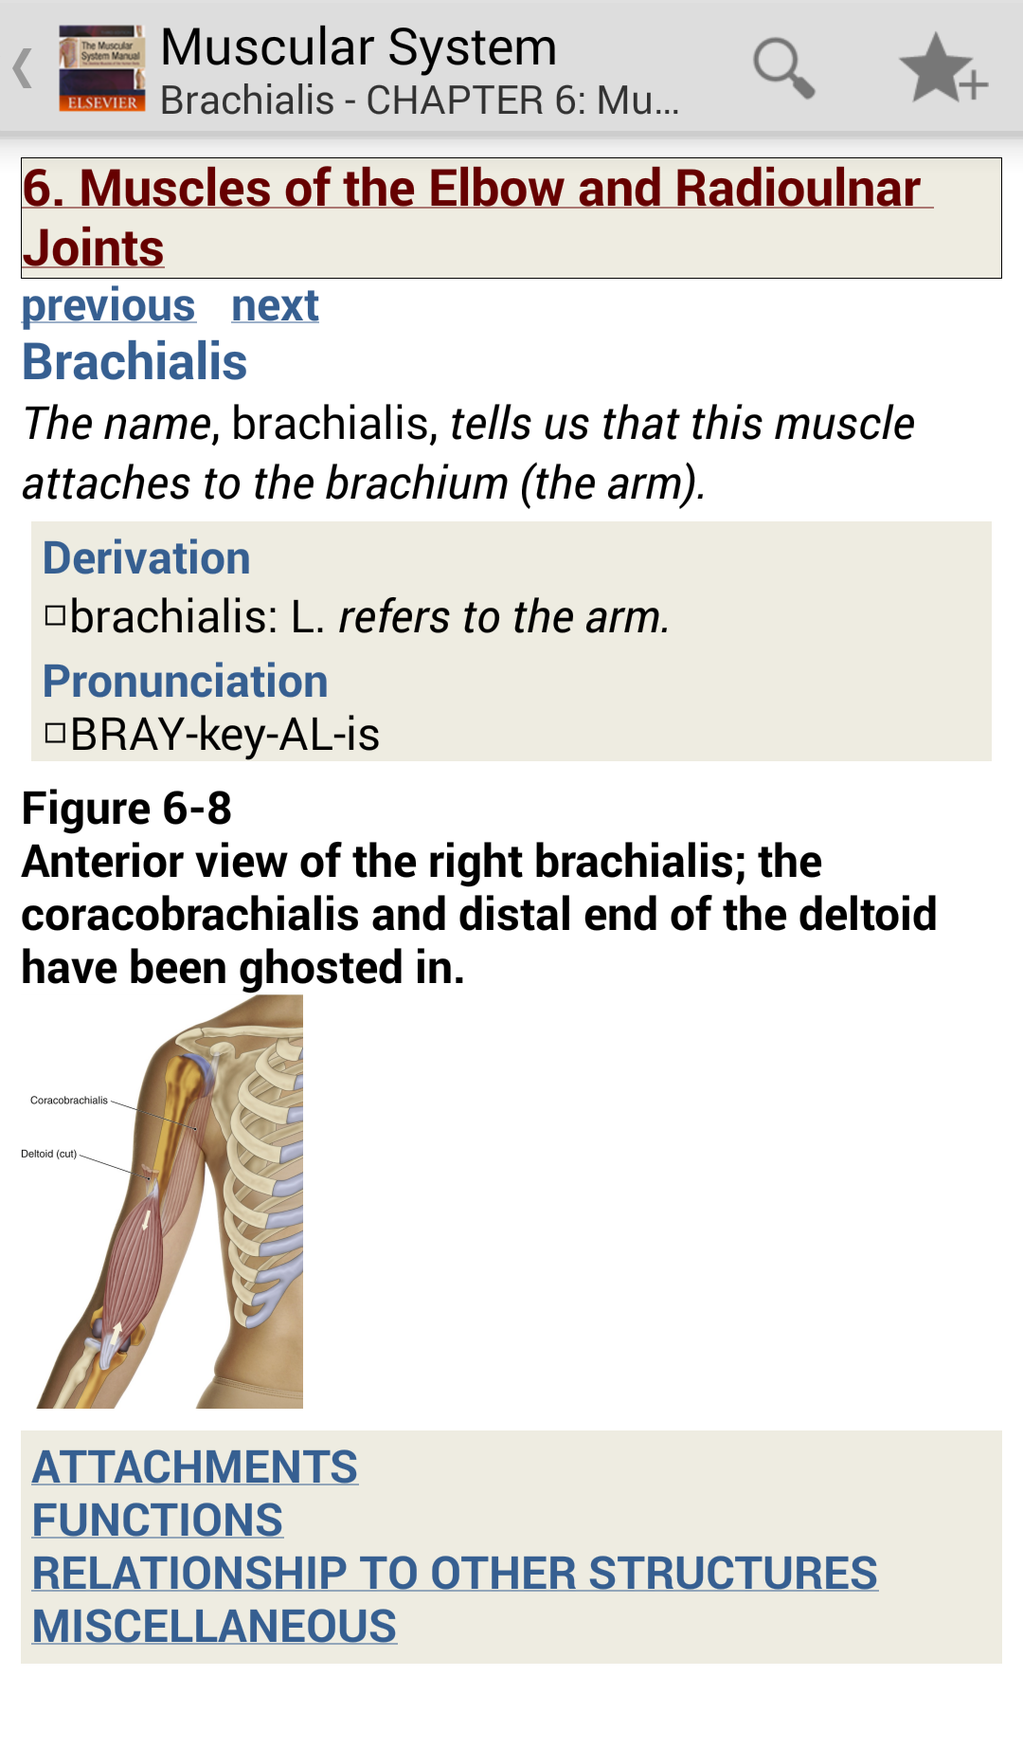 The Muscular System Manual: The Skeletal Muscles of the Human Body Screenshot